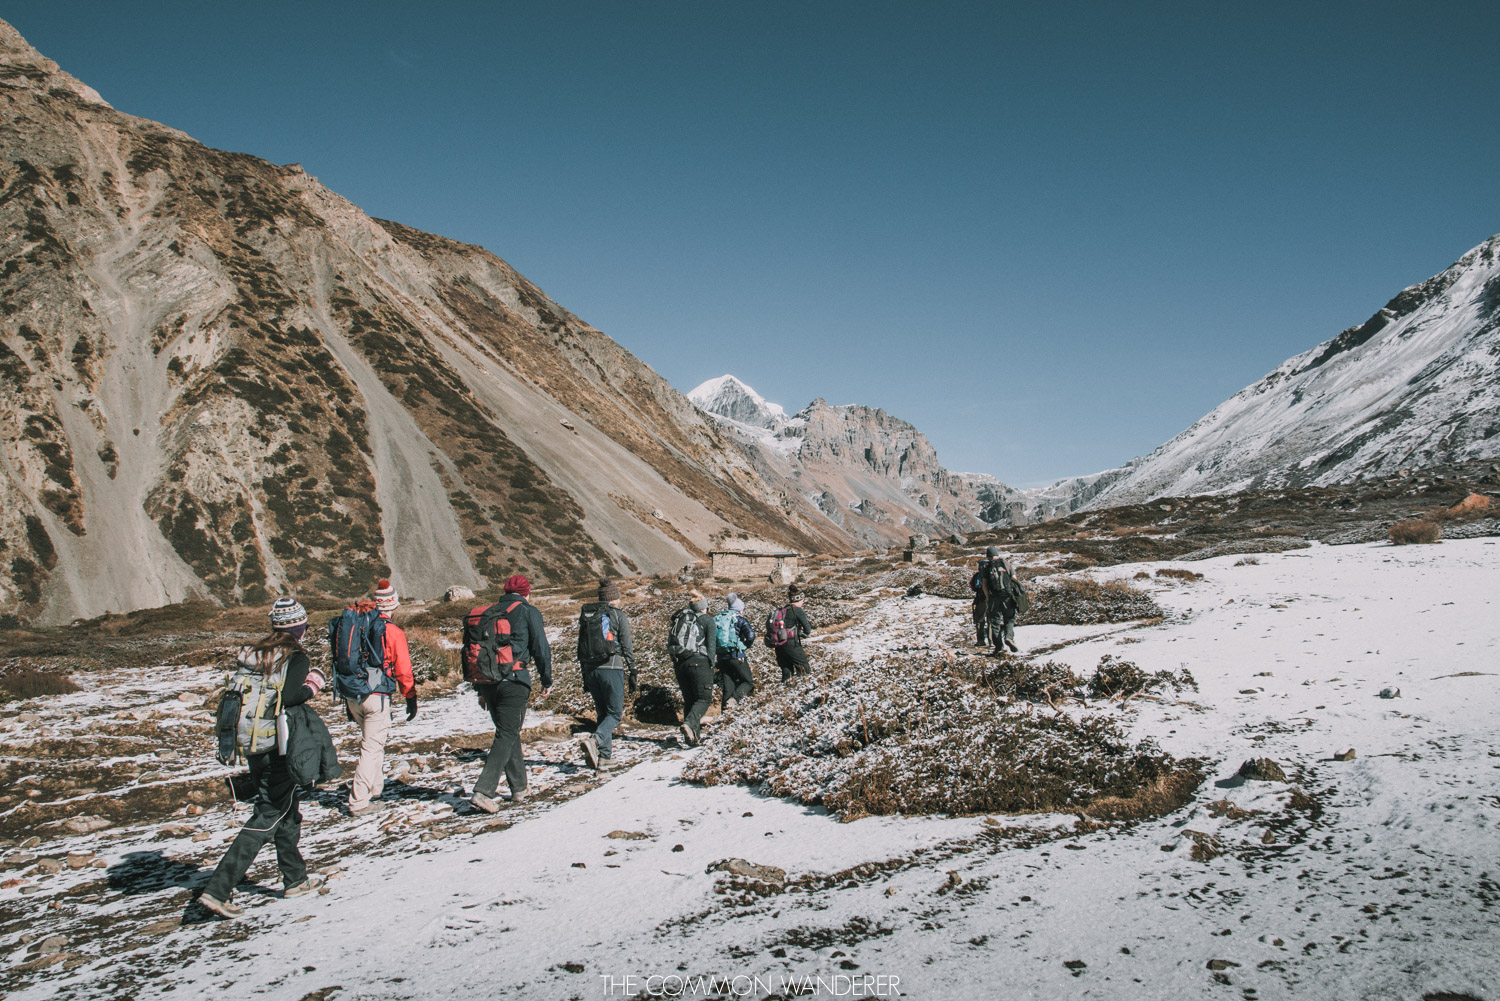 trekking in the Annapurna Circuit, 30 photos that will make you want to visit Nepal